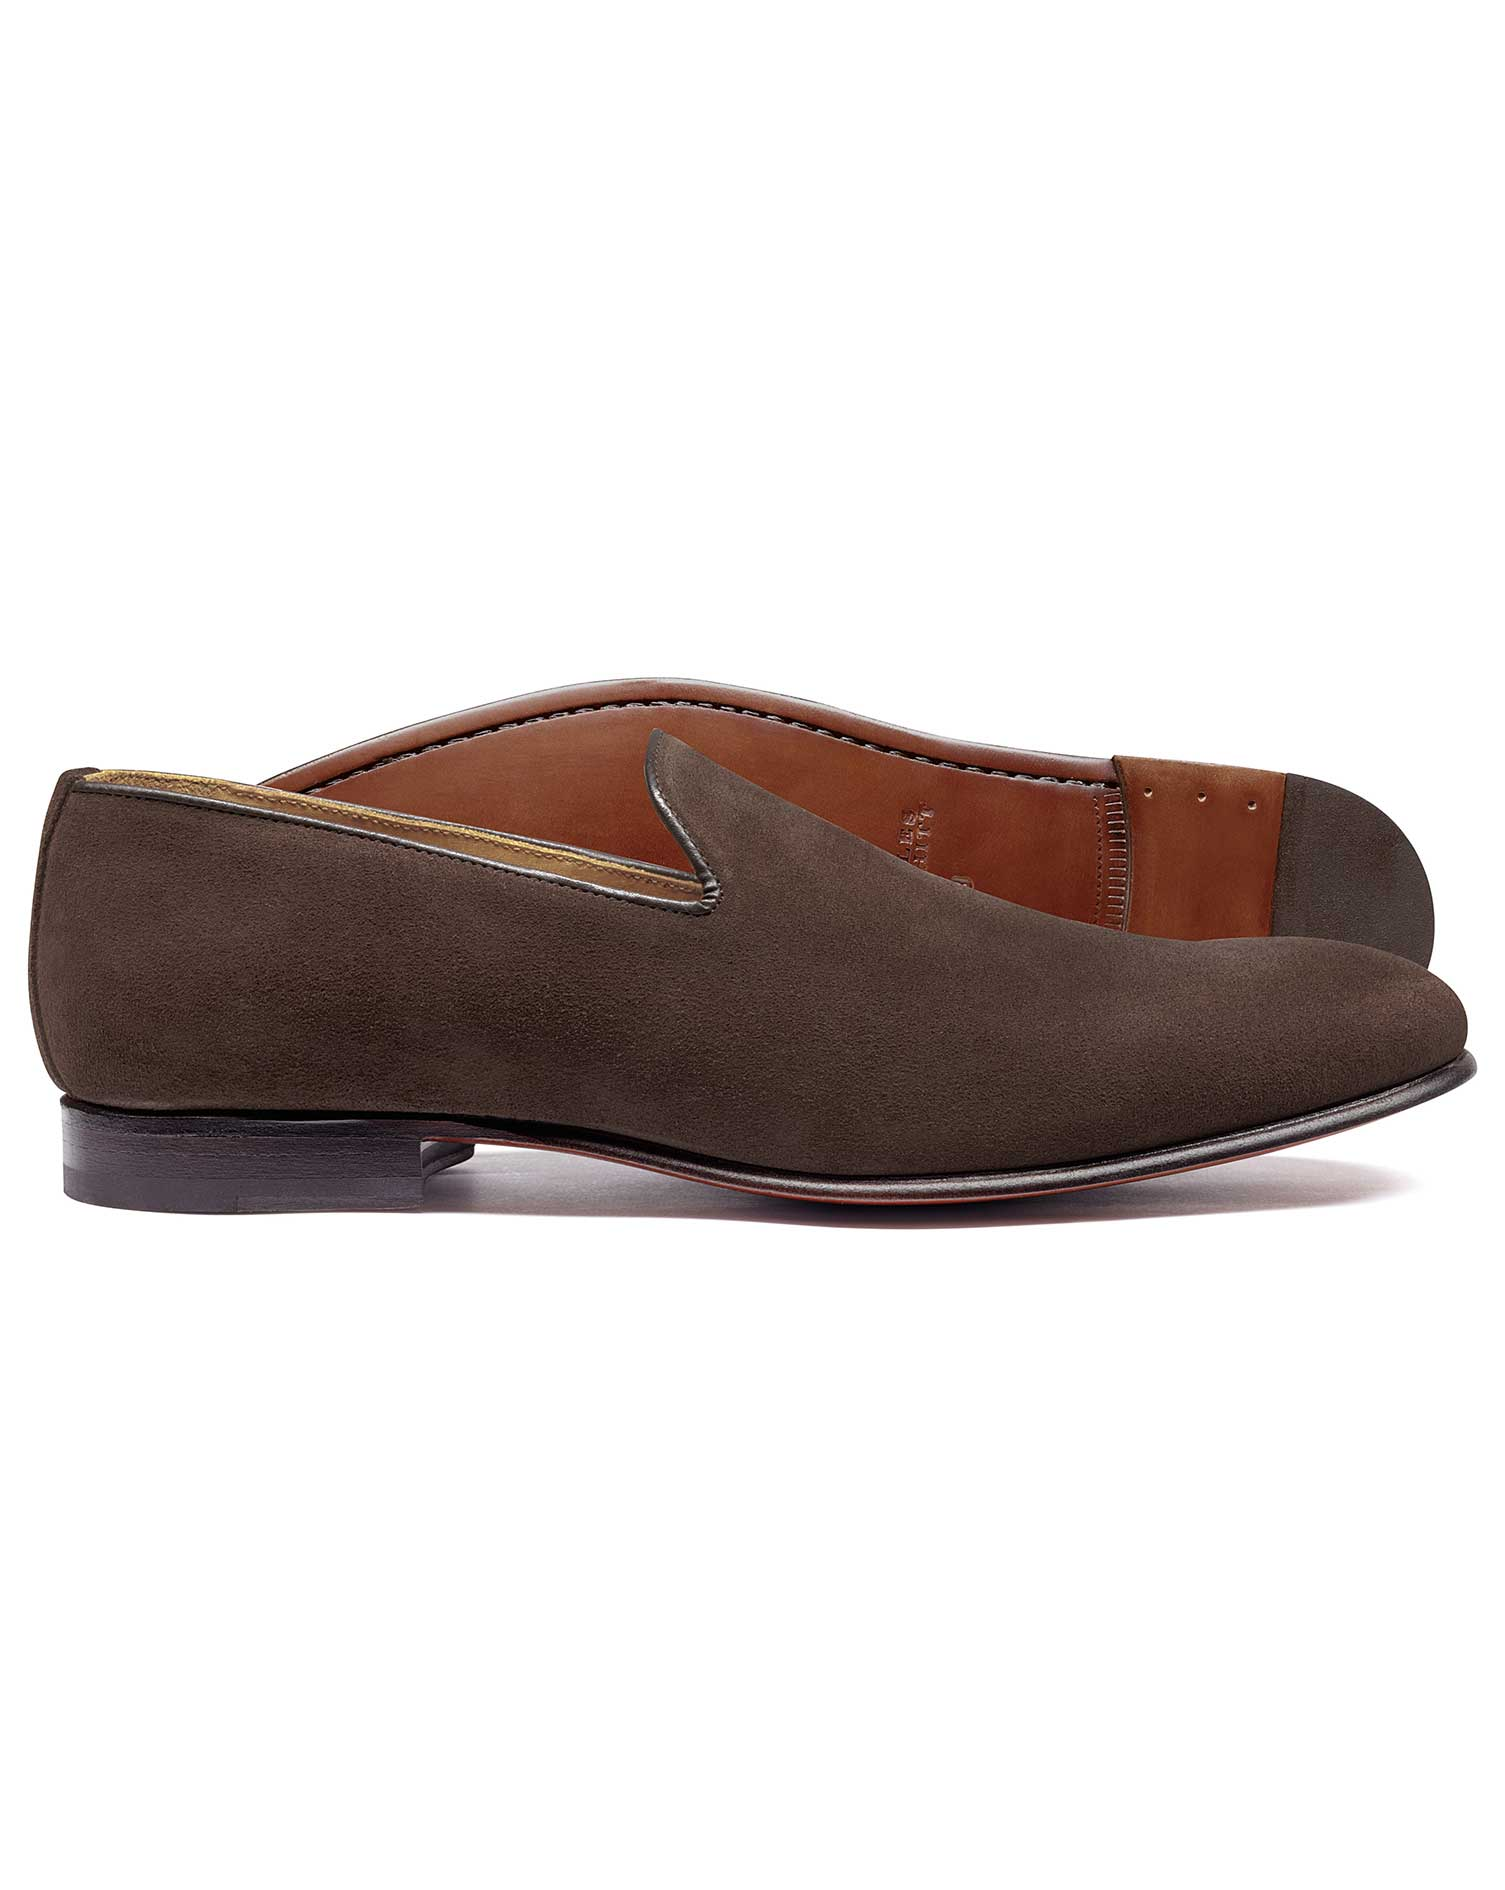 aa2e4d00c37 Shop online for for Men s Designer Clothes for delivery to Sweden on ...